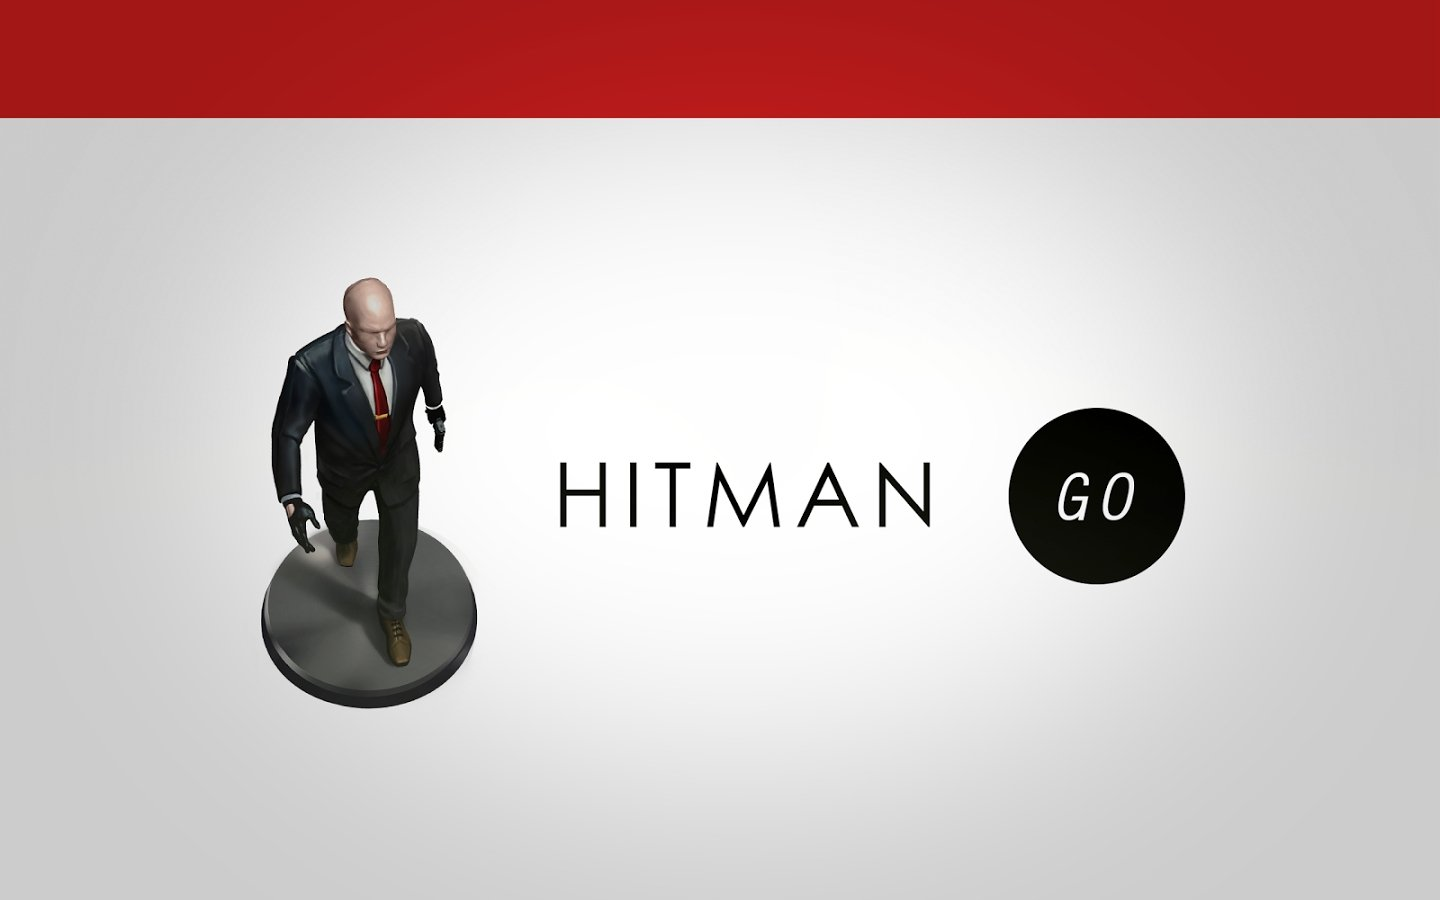 Hitman GO Android image 5